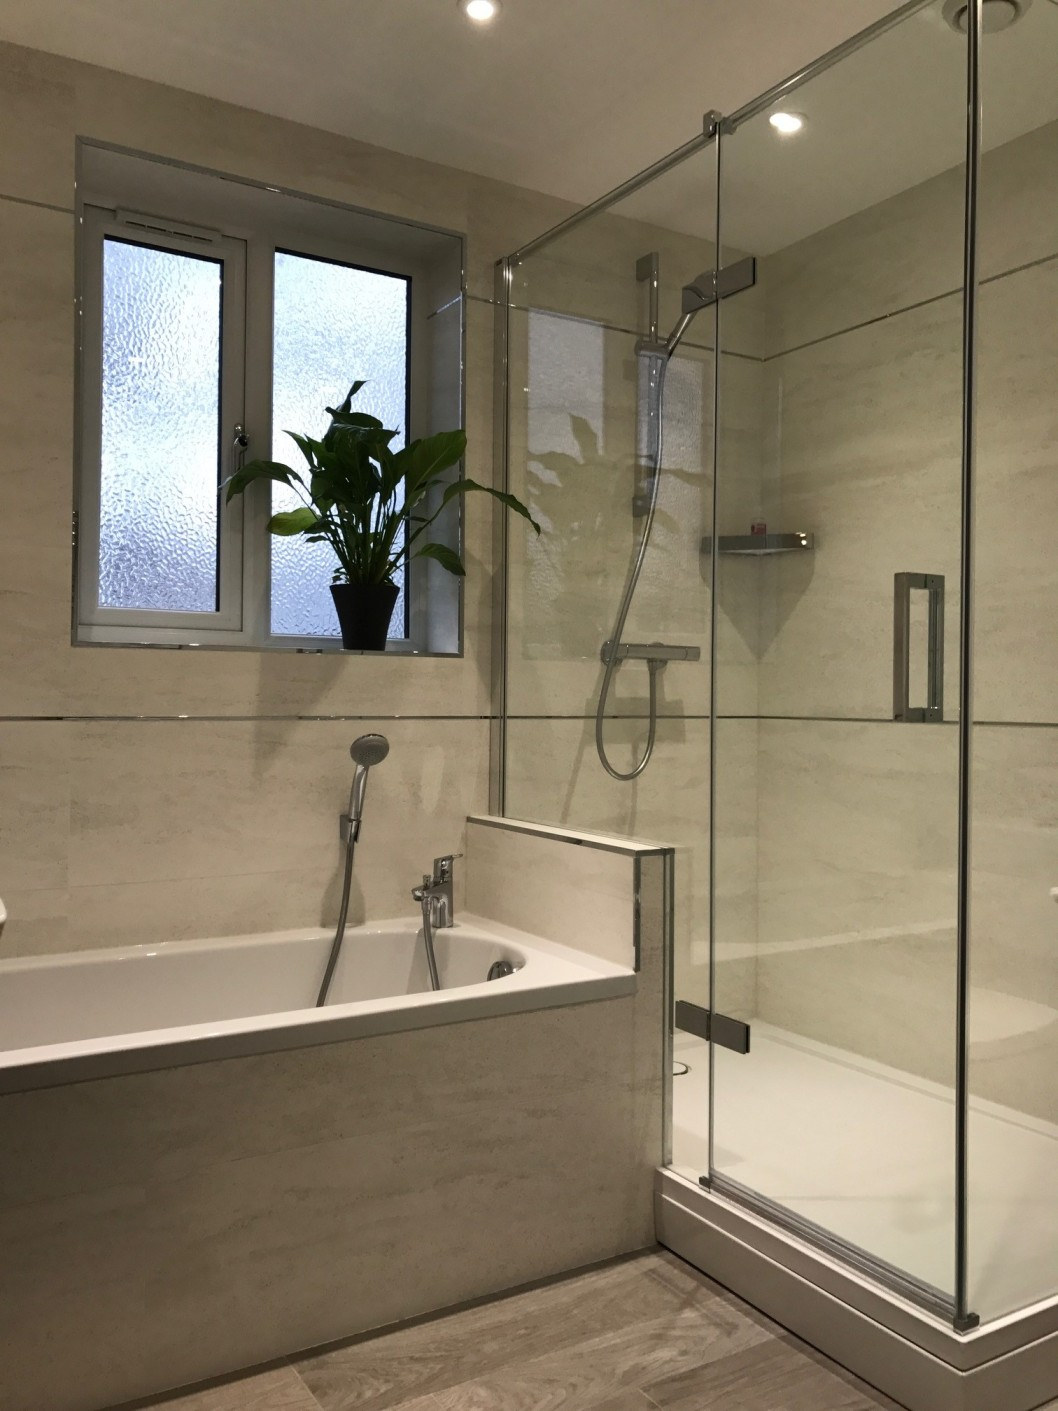 Stylish modern main bathroom from Curtis brothers